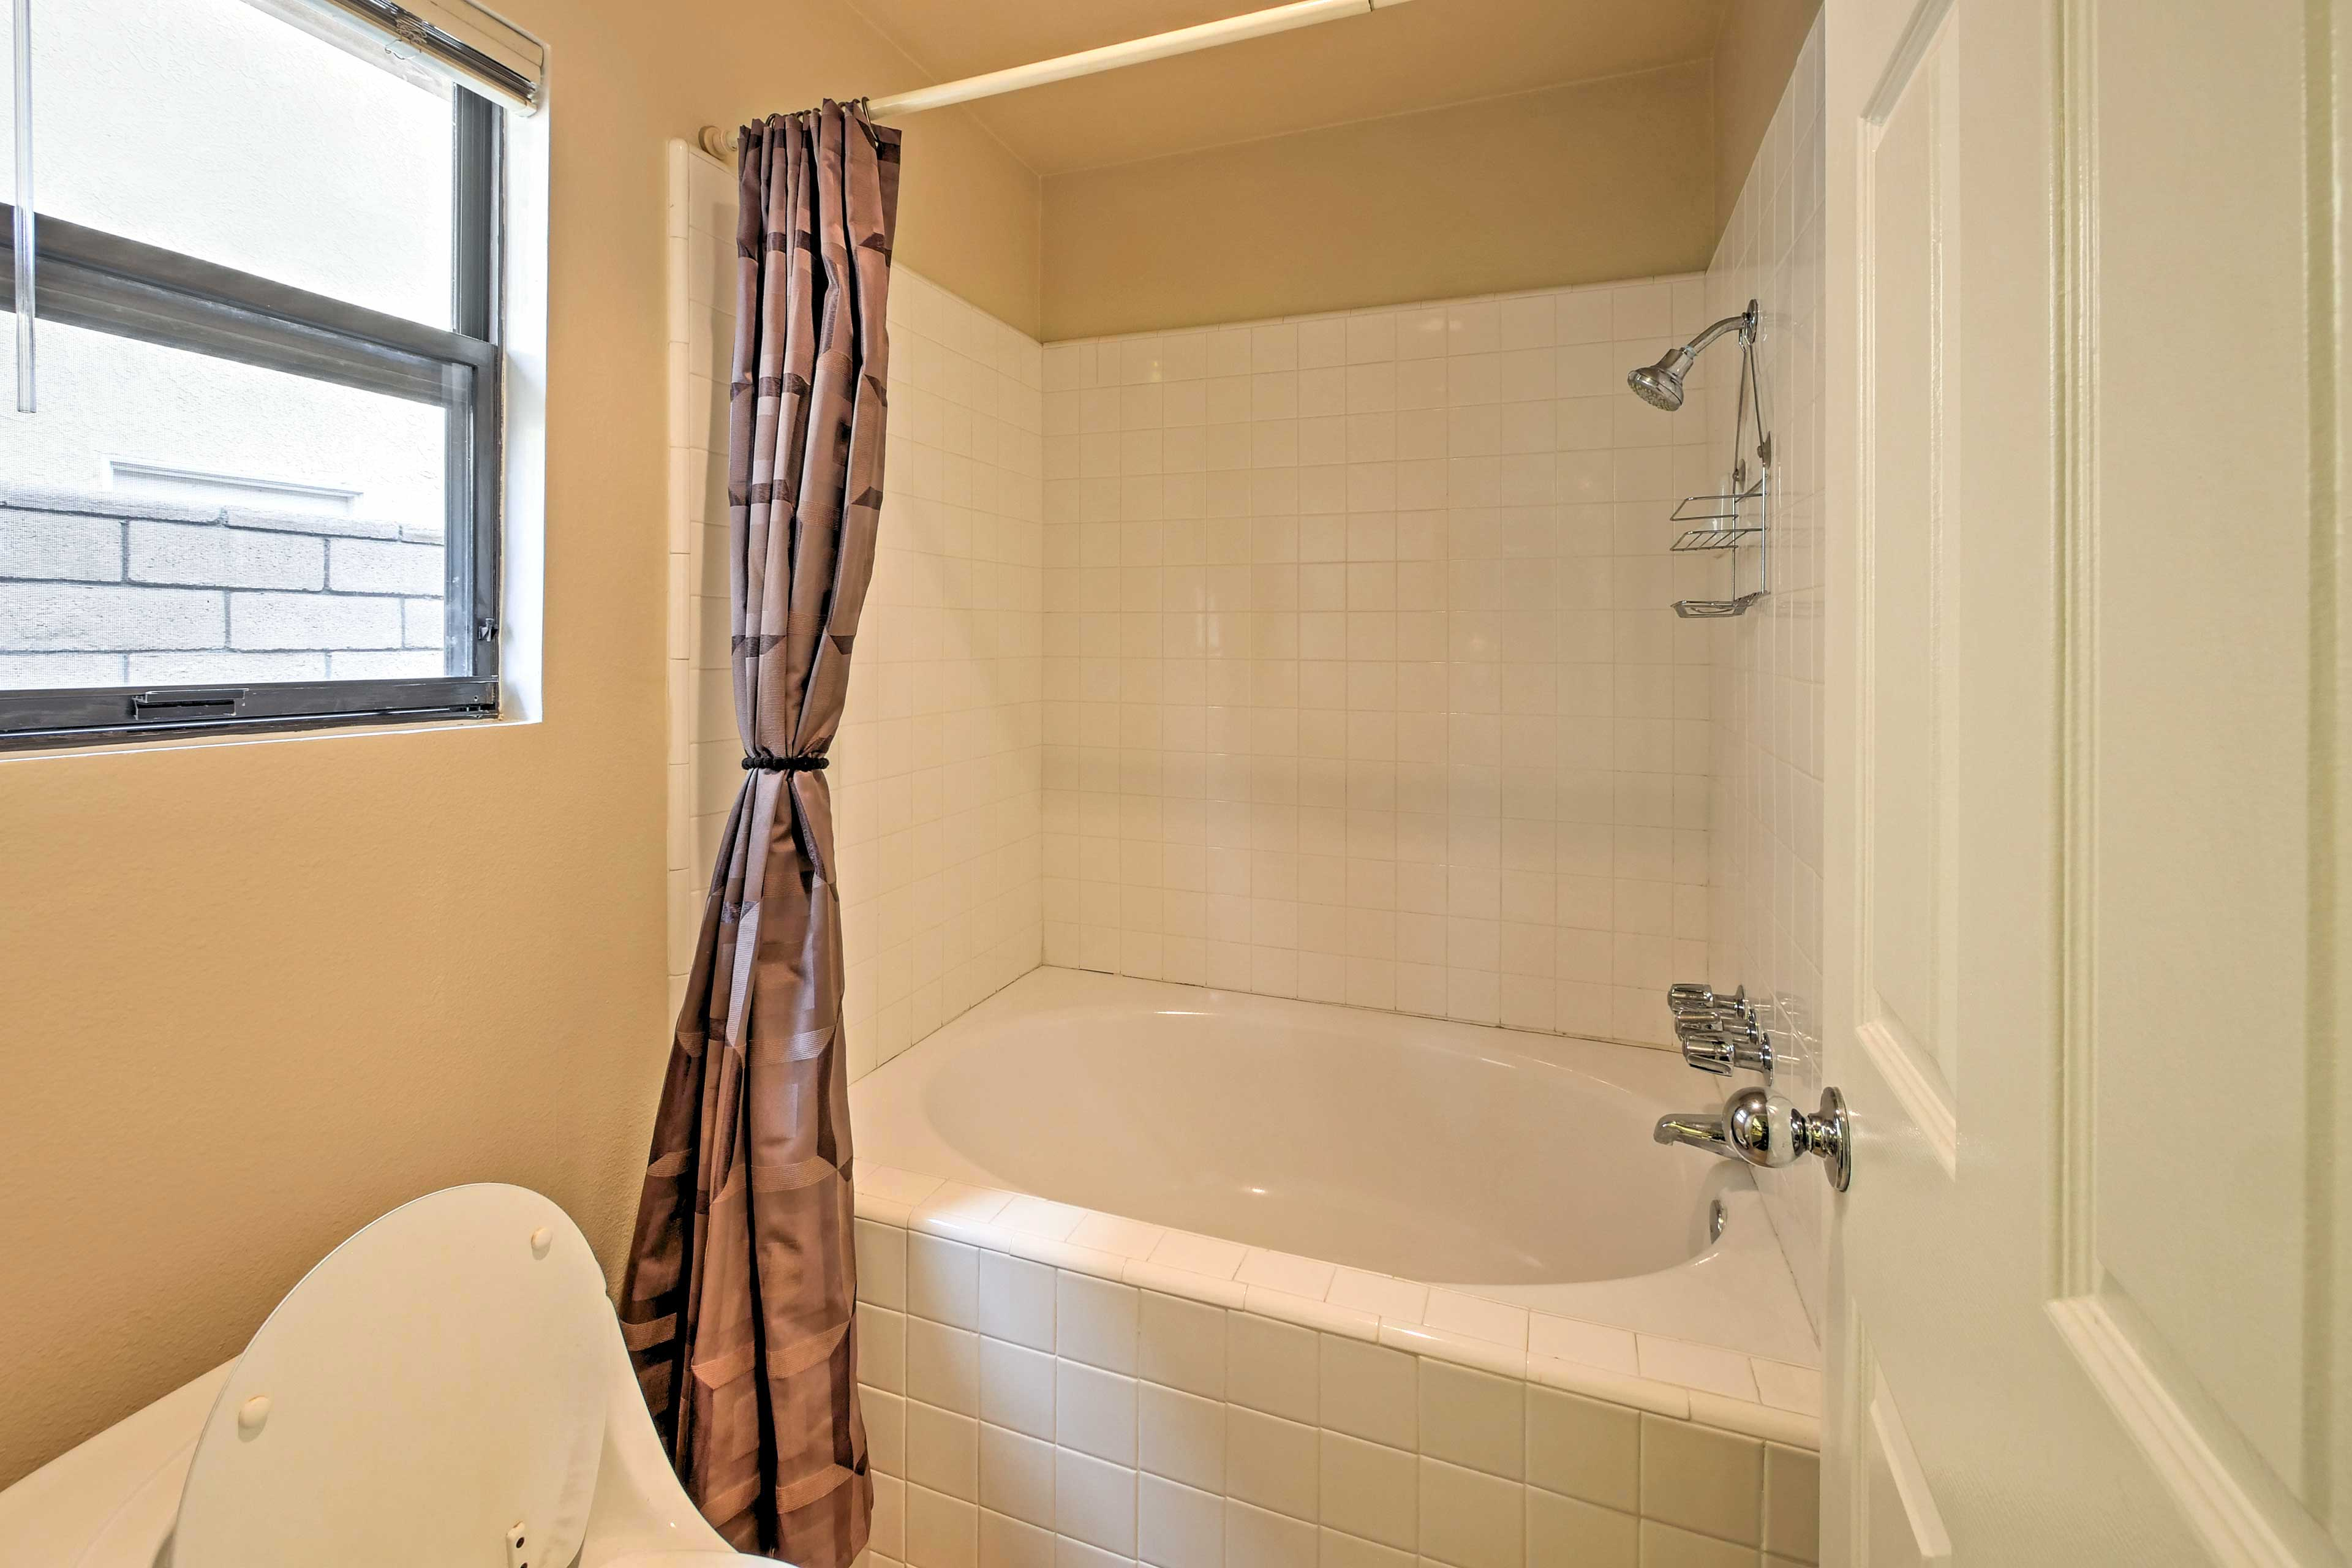 Take a shower or a bath - the choice is yours!